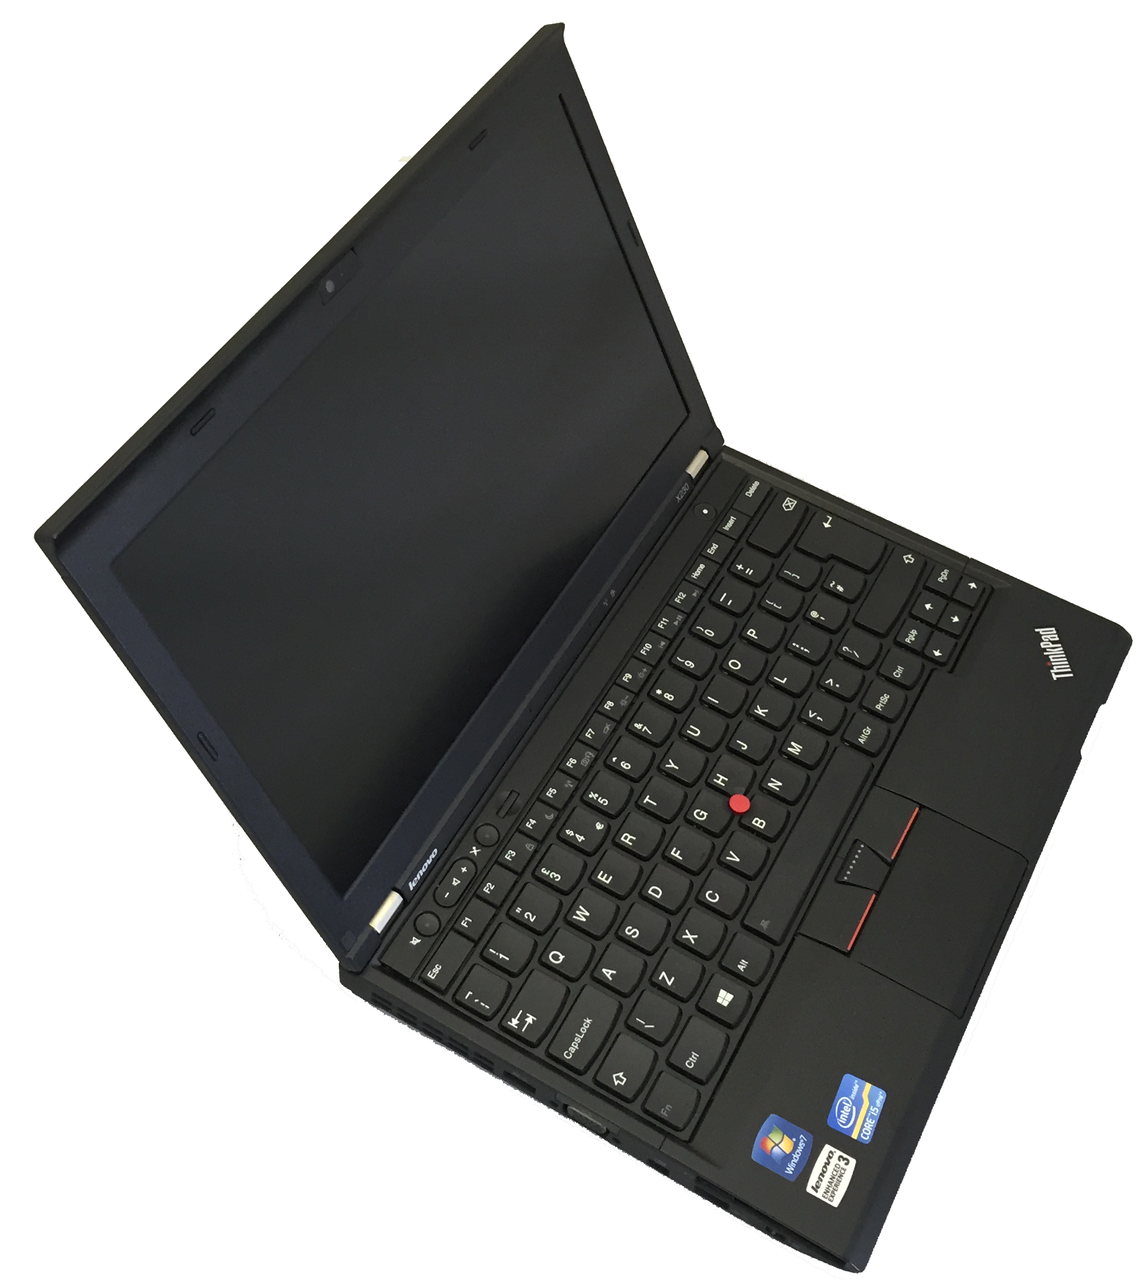 Lenovo ThinkPad X230 Intel Core i5-3320M 2 60GHz Windows 64